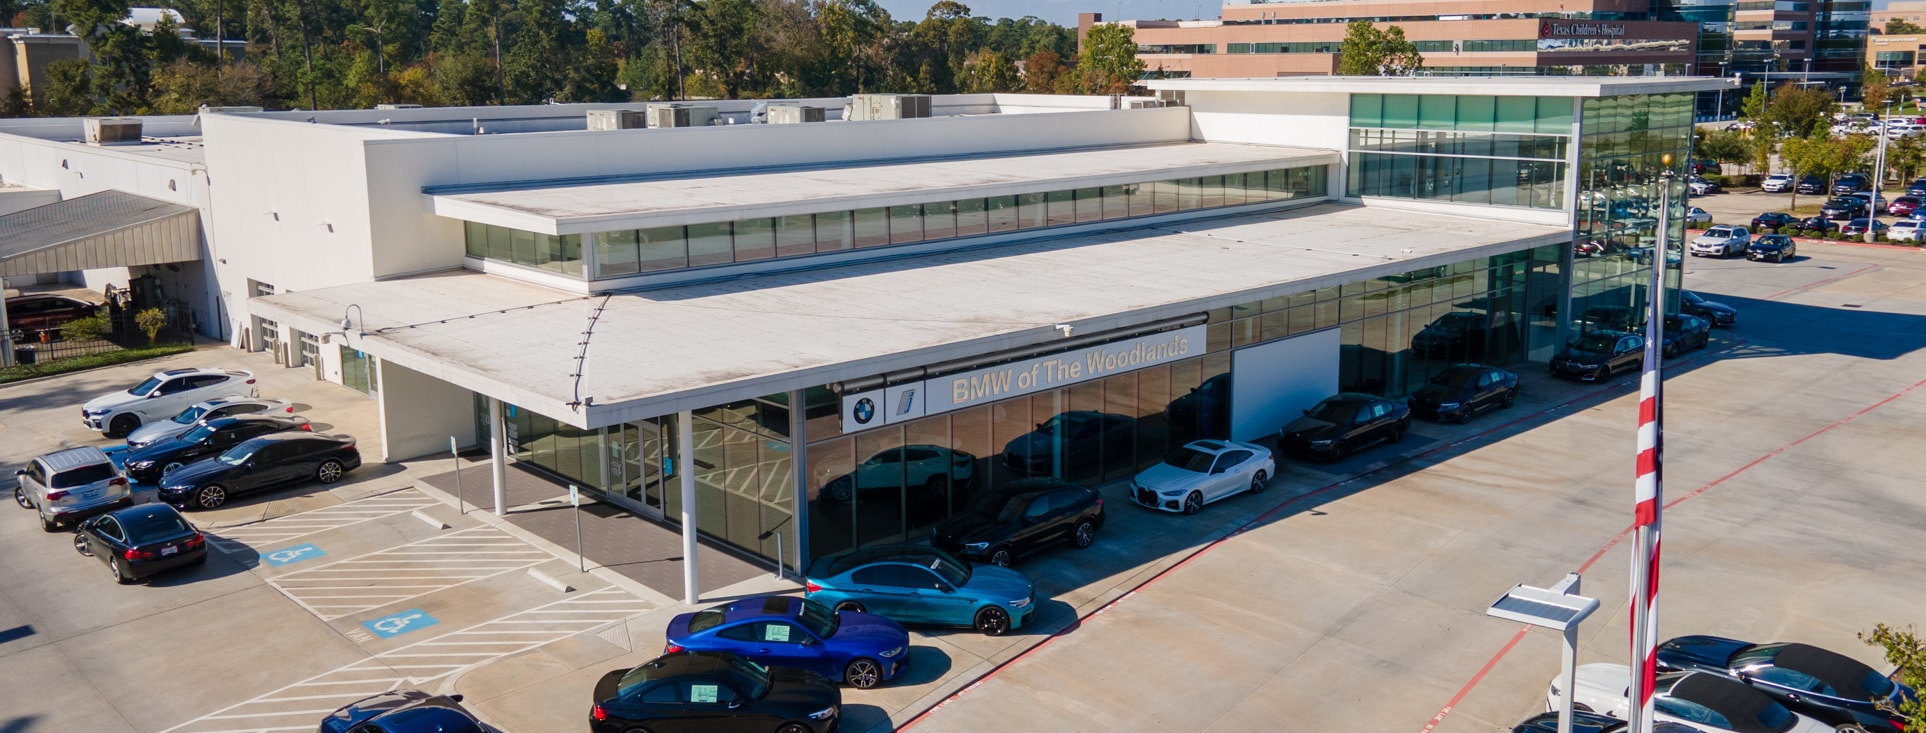 BMW of The Woodlands offers sales, service, and parts in The Woodlands